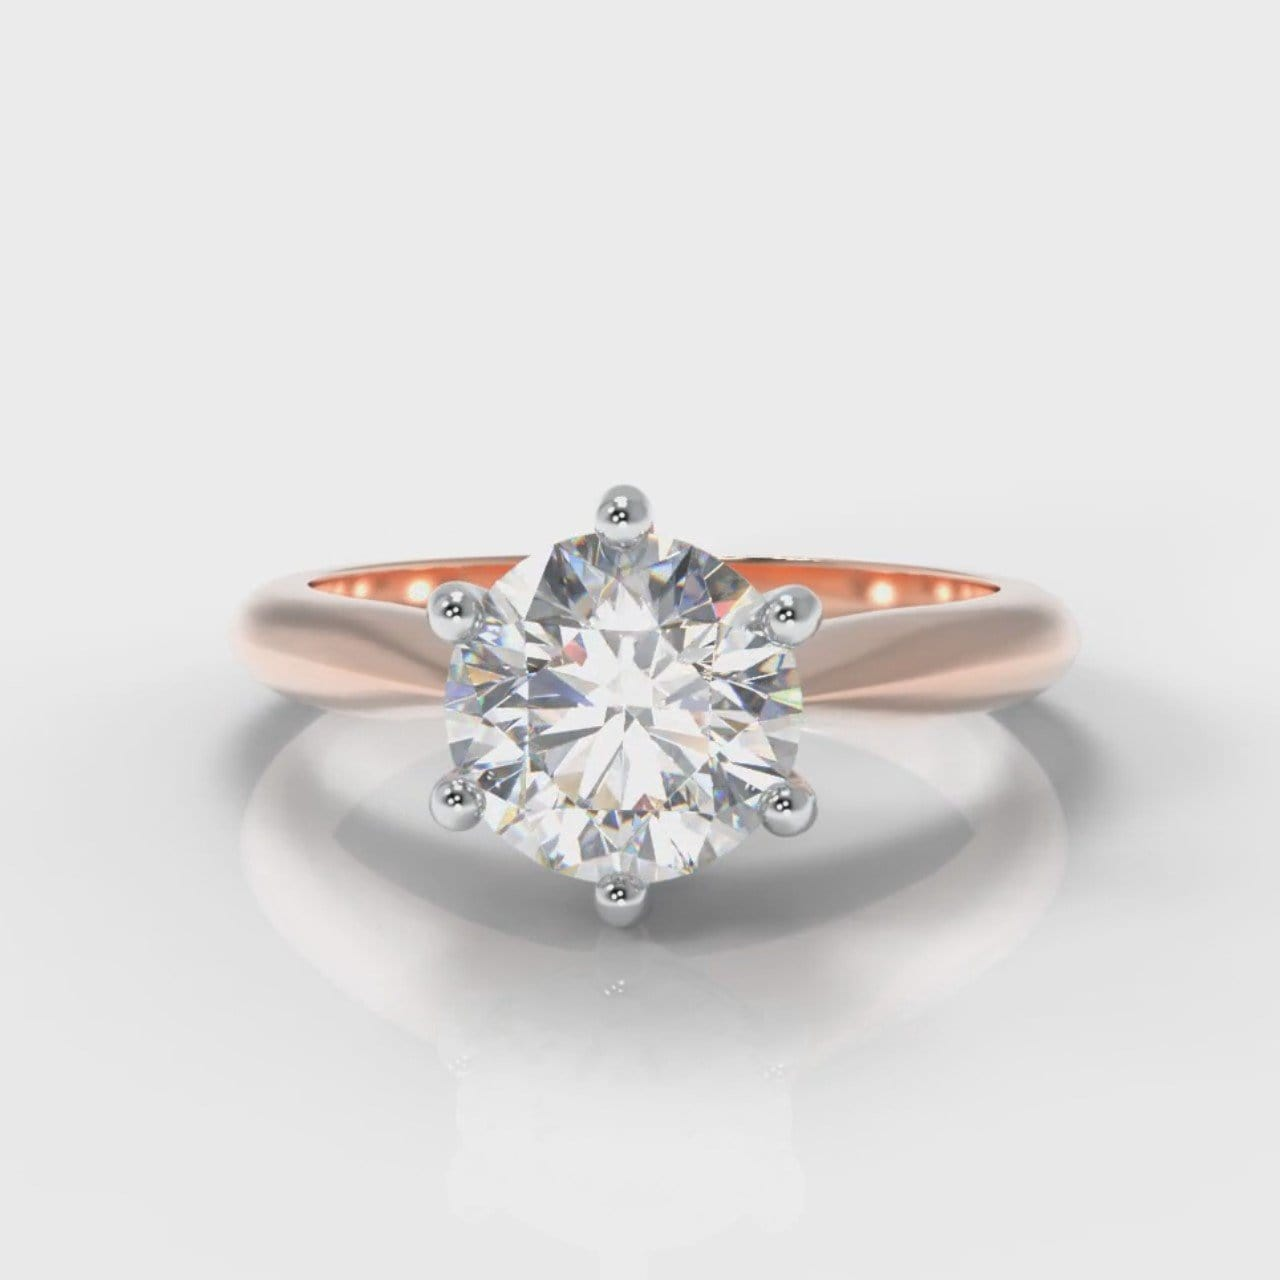 Star Solitaire Round Brilliant Diamond Engagement Ring - Rose Gold